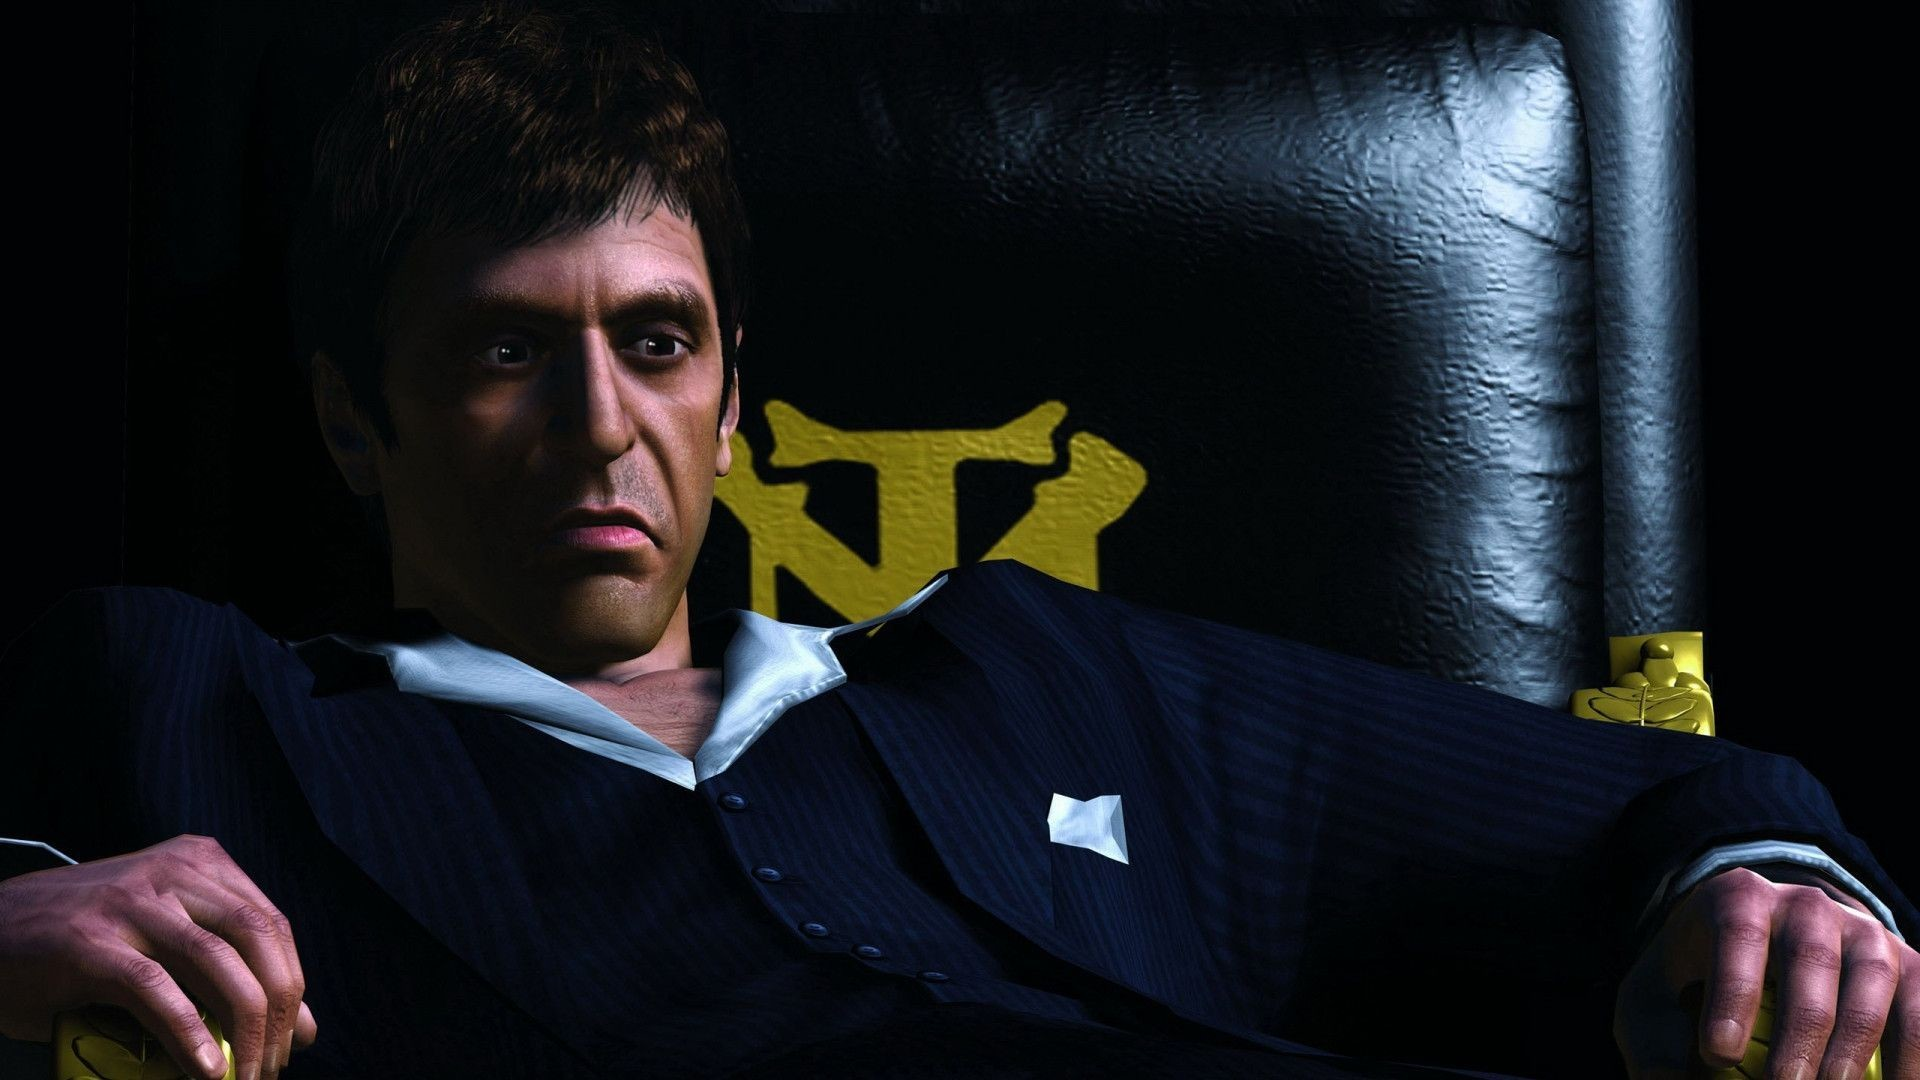 Scarface Images